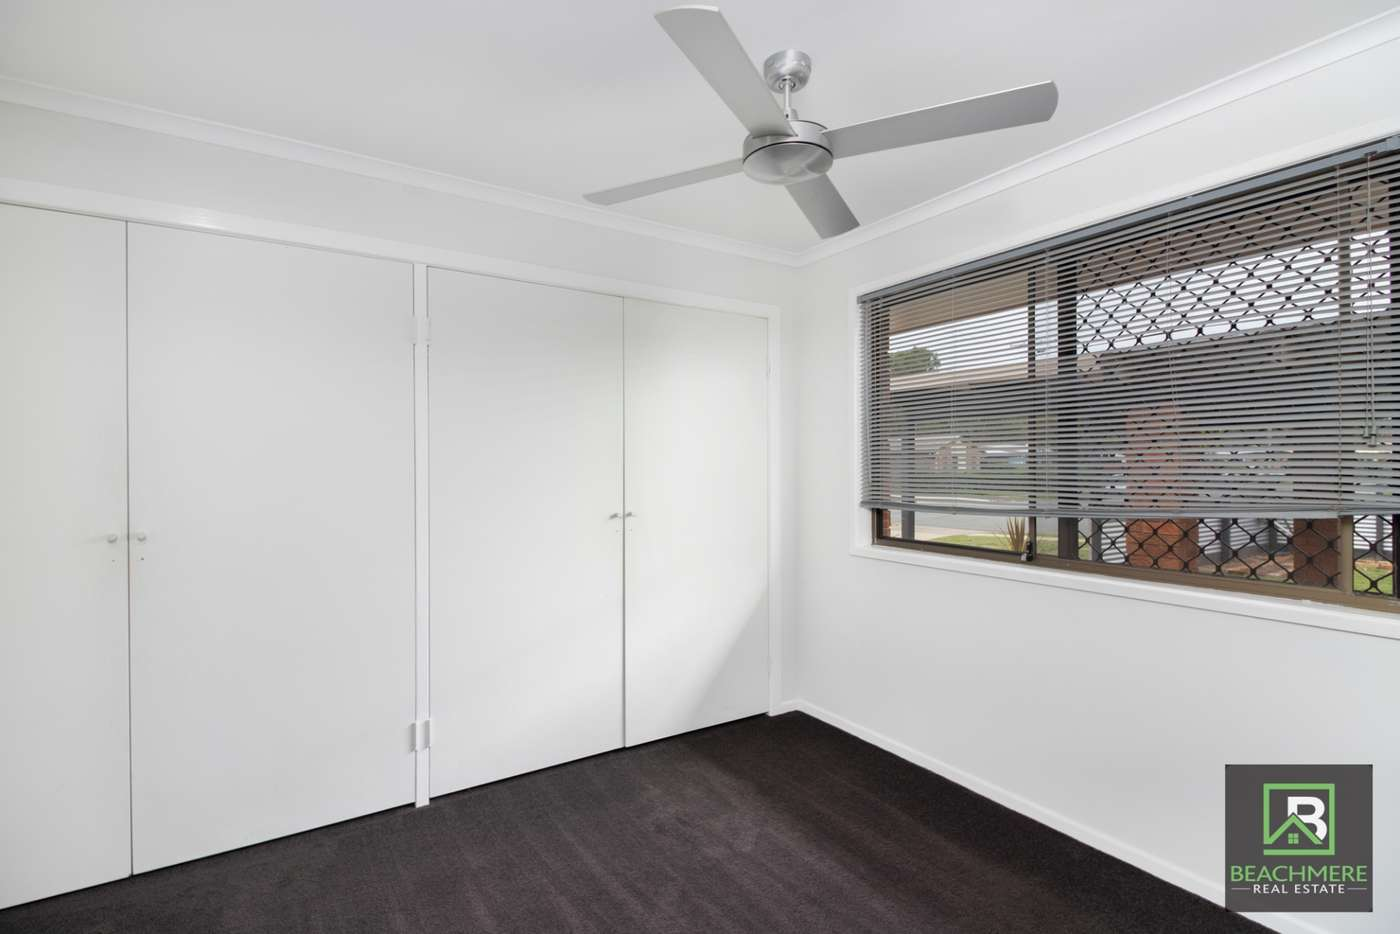 Seventh view of Homely house listing, 41 Patrick Street, Beachmere QLD 4510